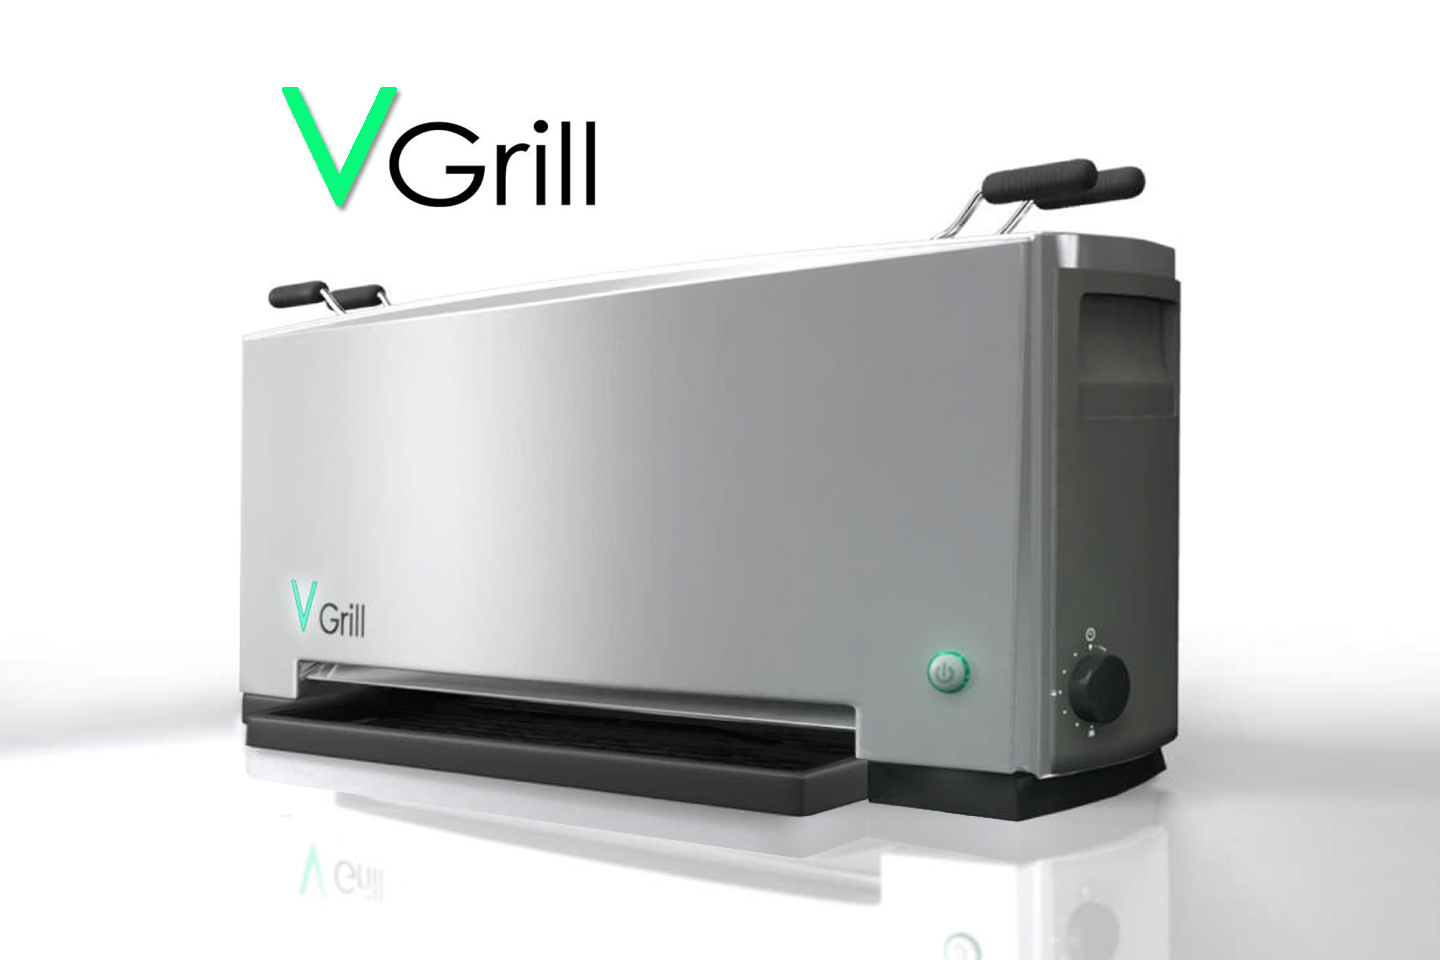 Vgrill Vertical Grill Image